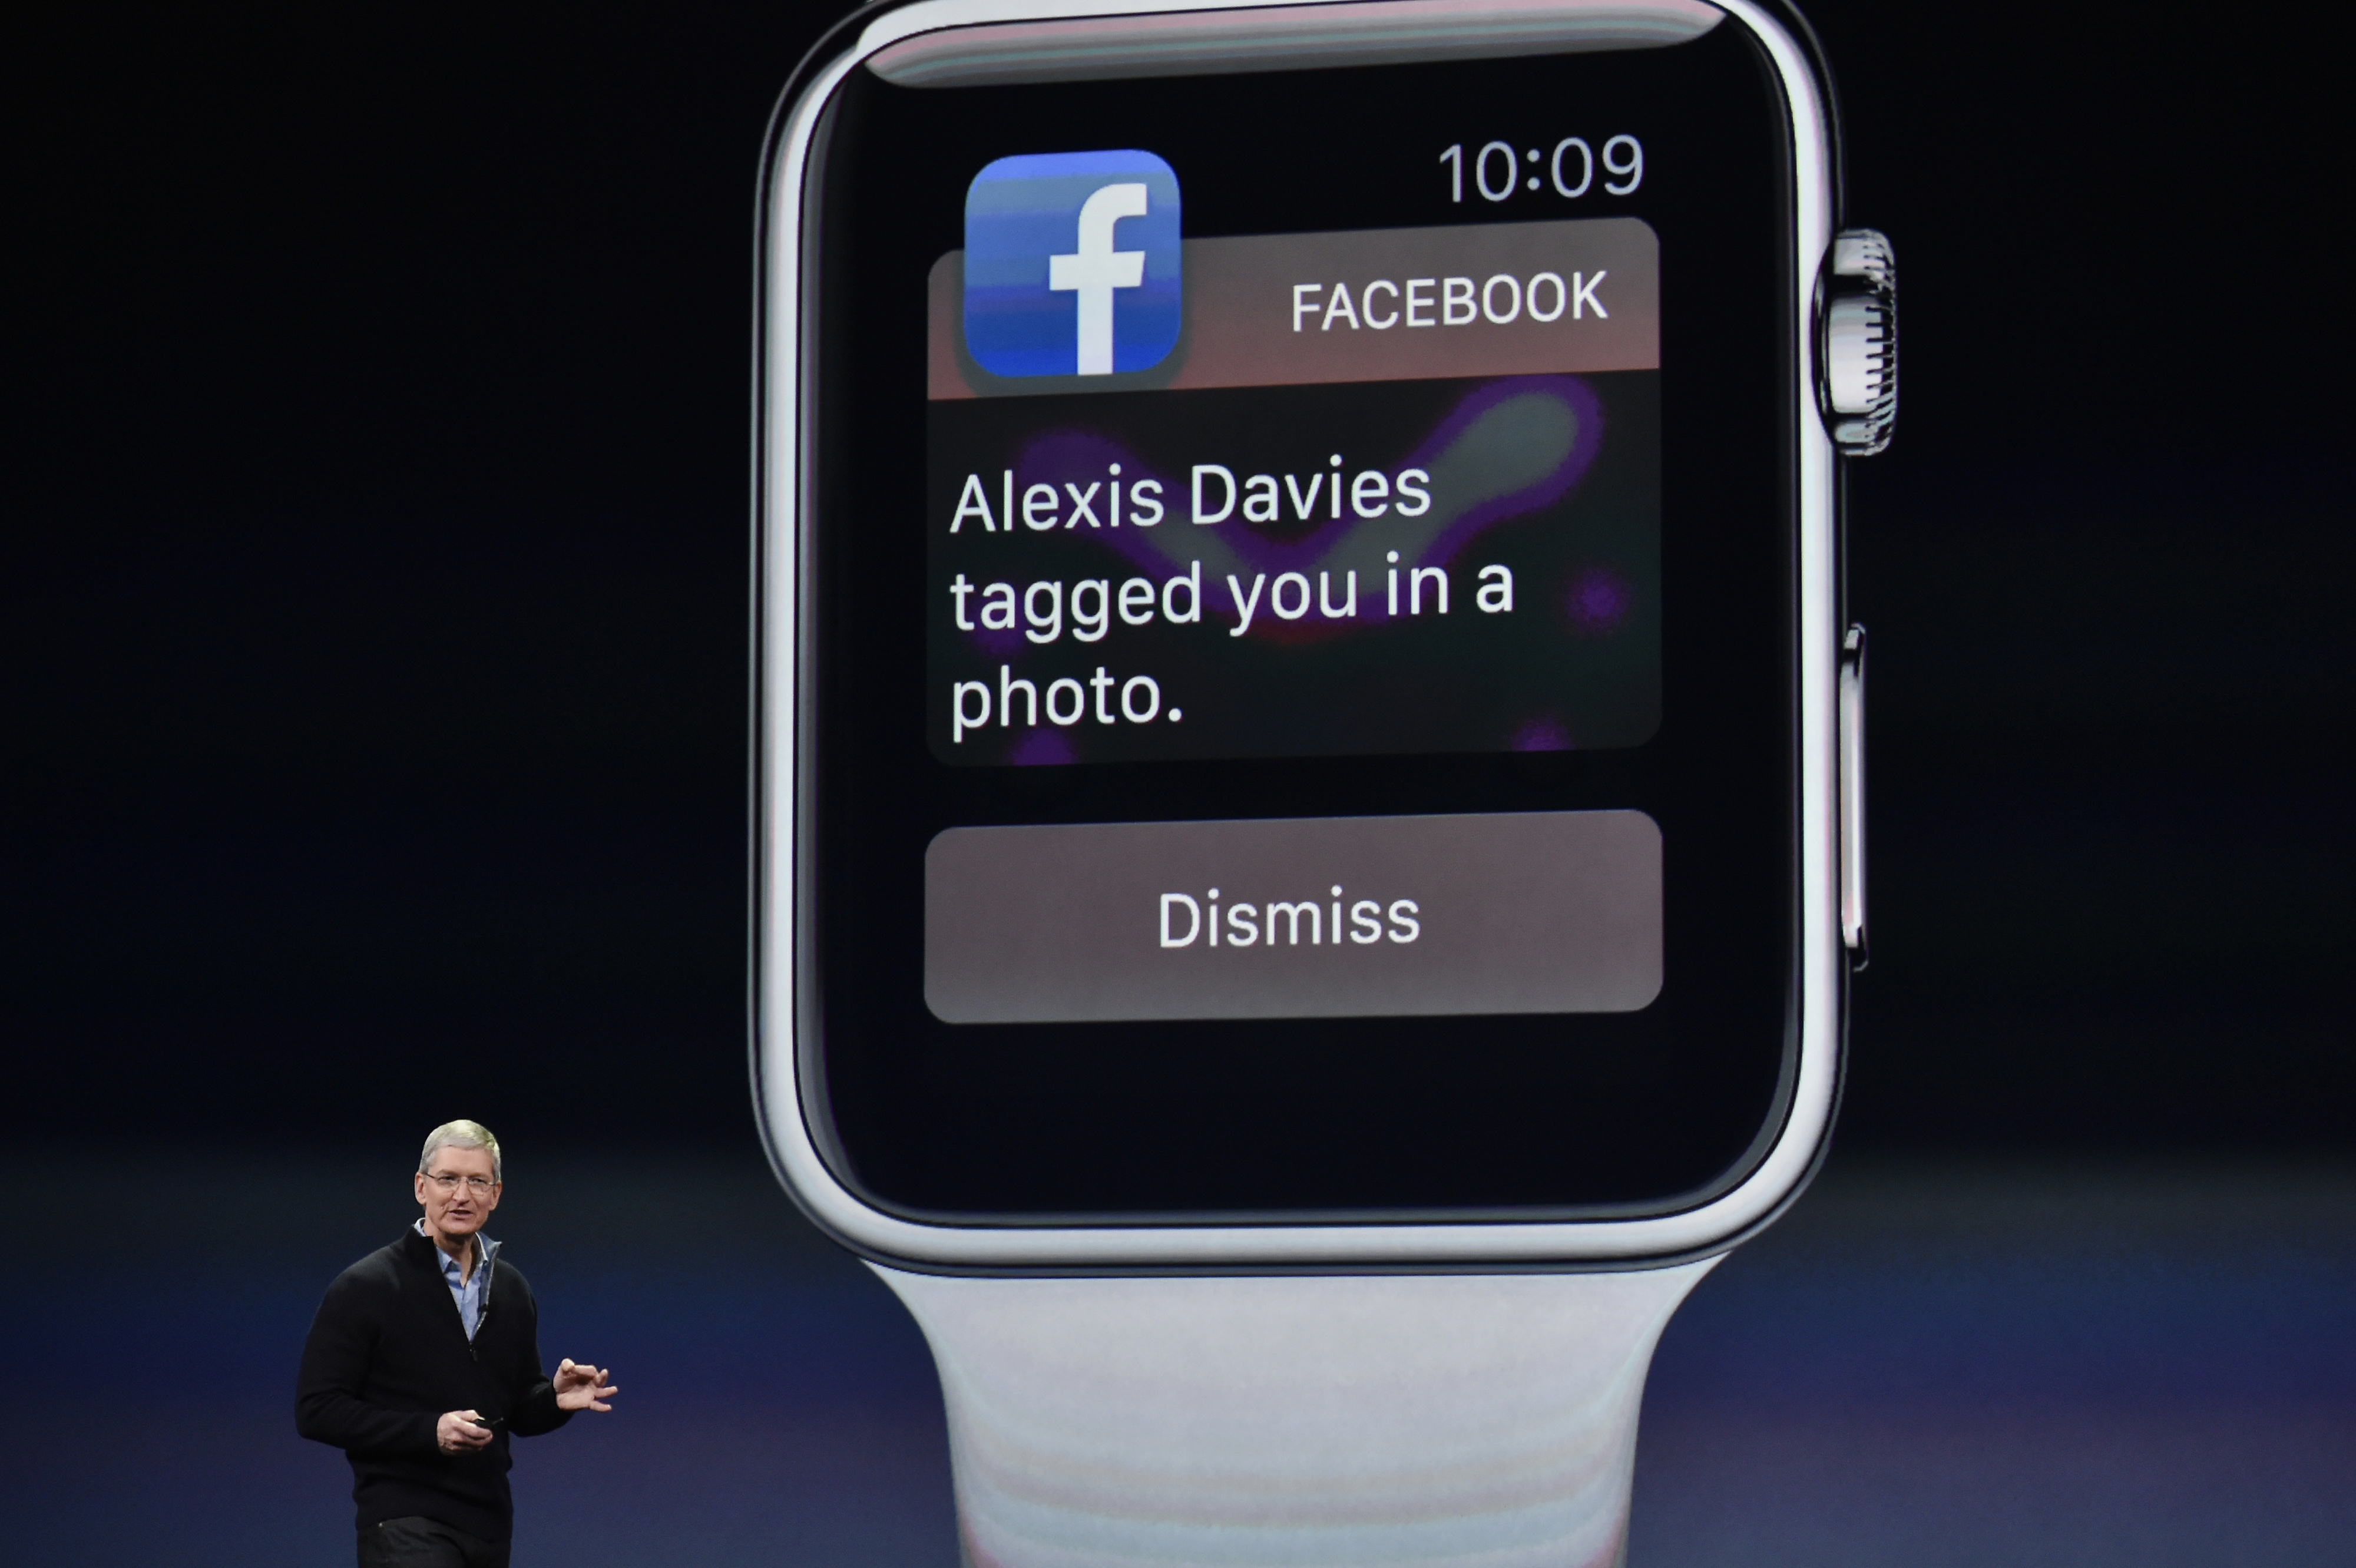 Tim Cook, chief executive officer of Apple Inc., speaks during the Apple Inc. Spring Forward event in San Francisco, California, U.S., on Monday, March 9, 2015.